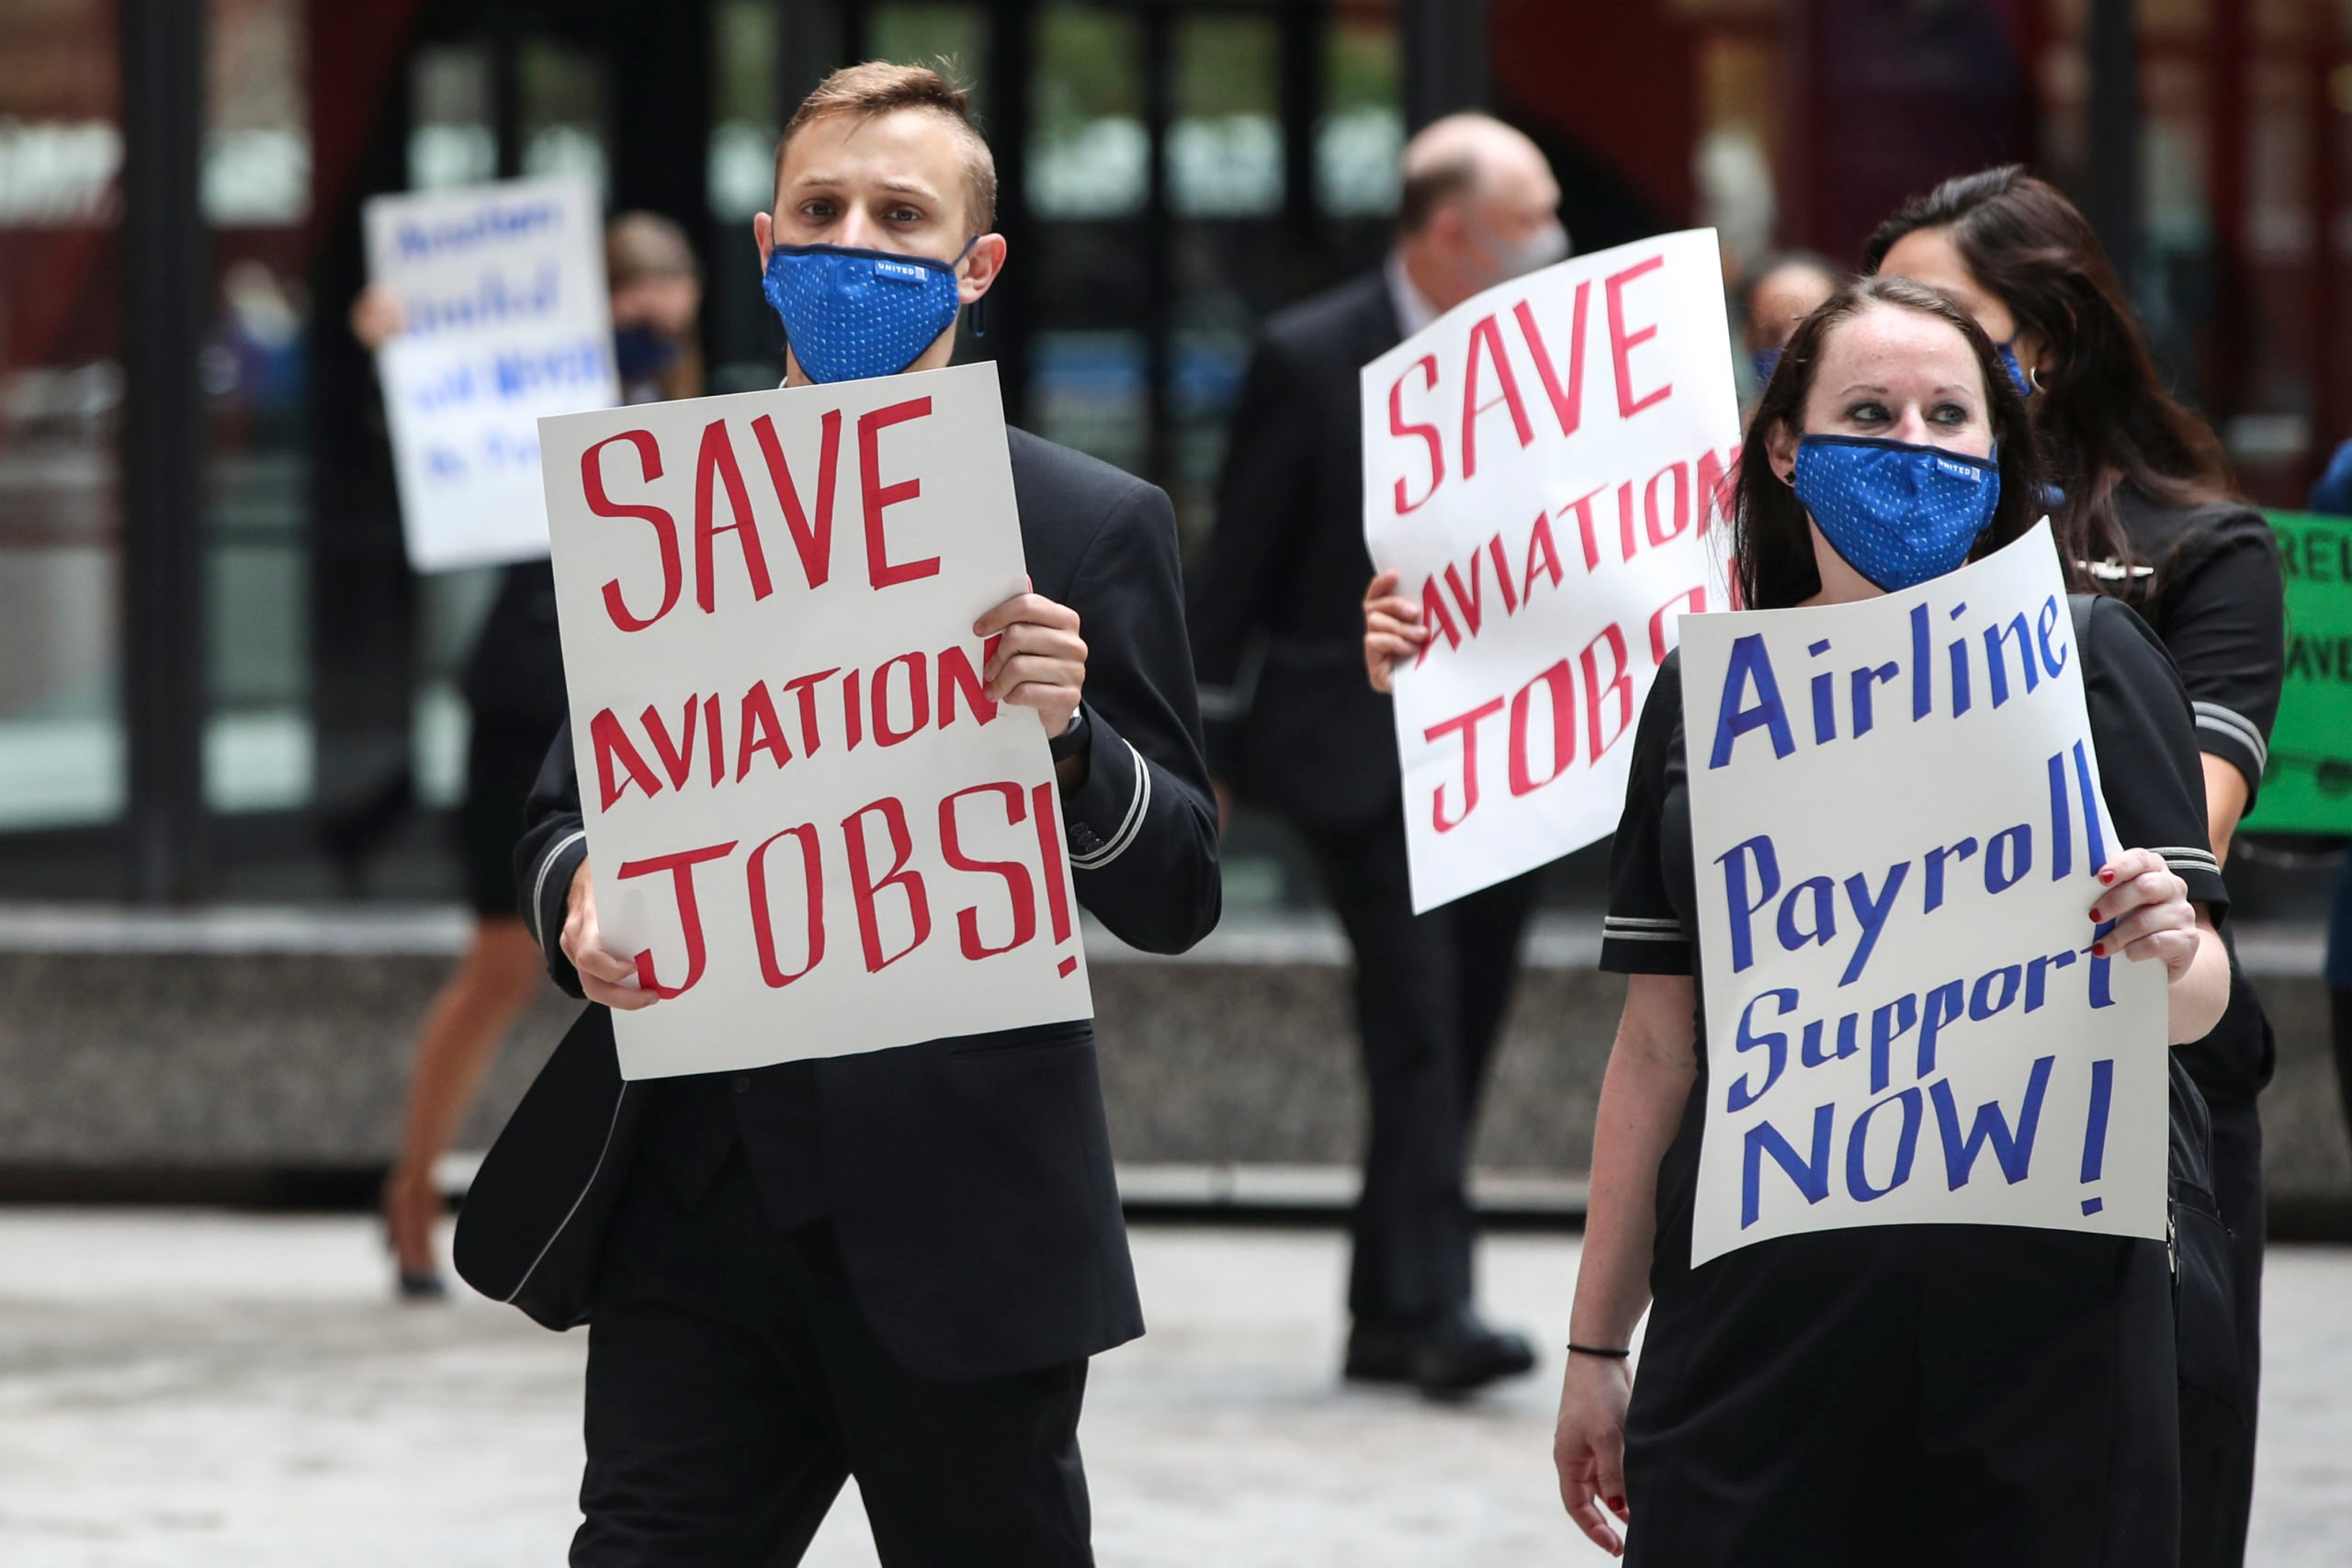 Airline industry workers hold signs during a protest in Chicago, Illinois on Sept. 9, 2020. (Kamil Krzaczynski/AFP via Getty Images)